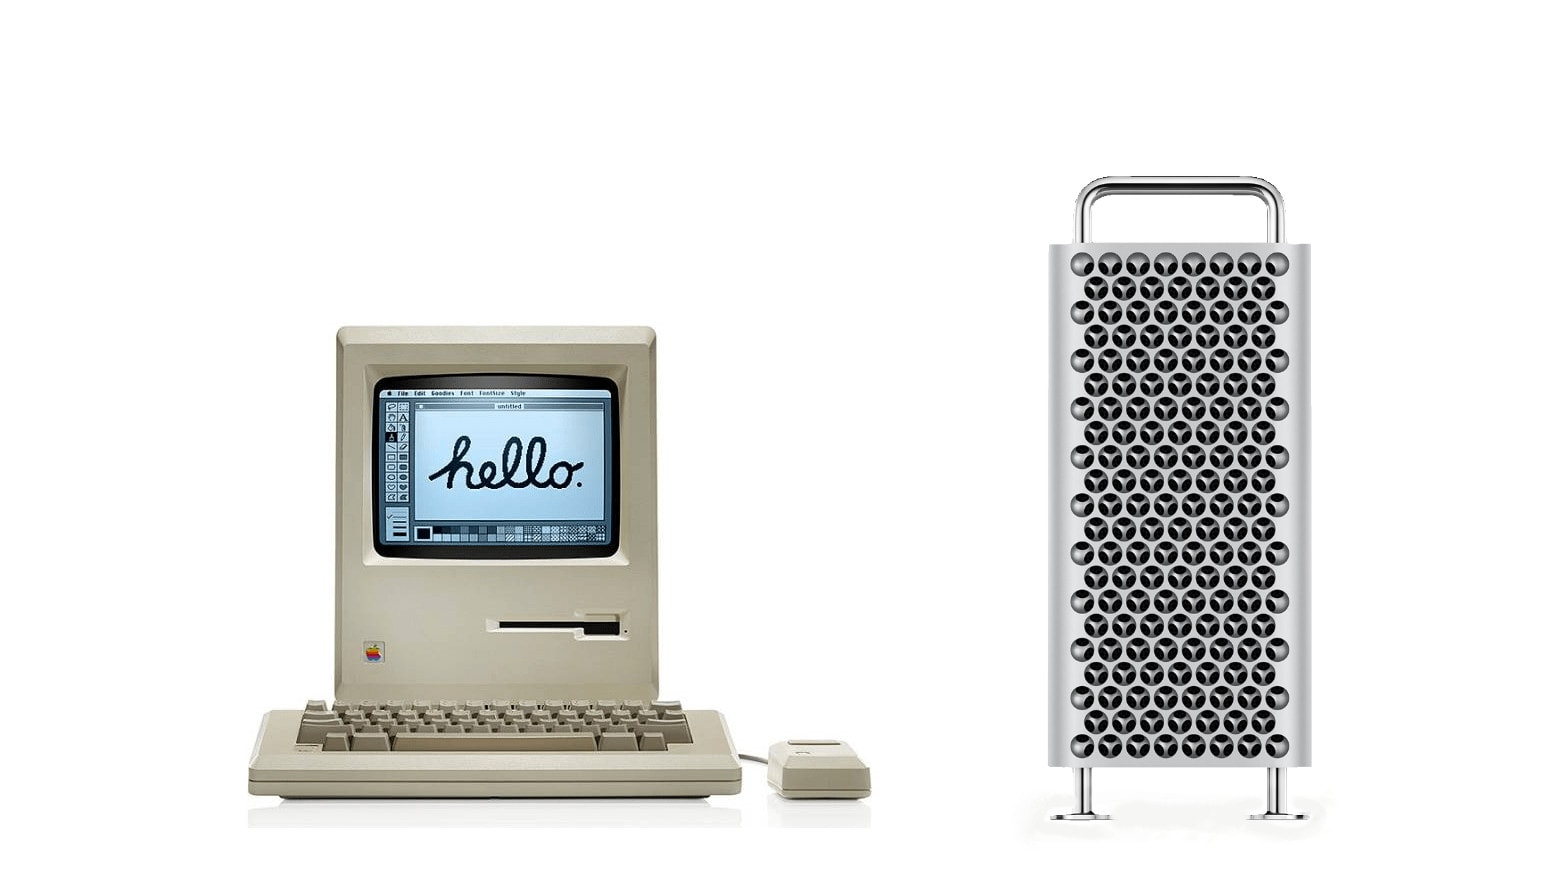 2019 Mac Pro and original Macintosh 128K: Which cost more.